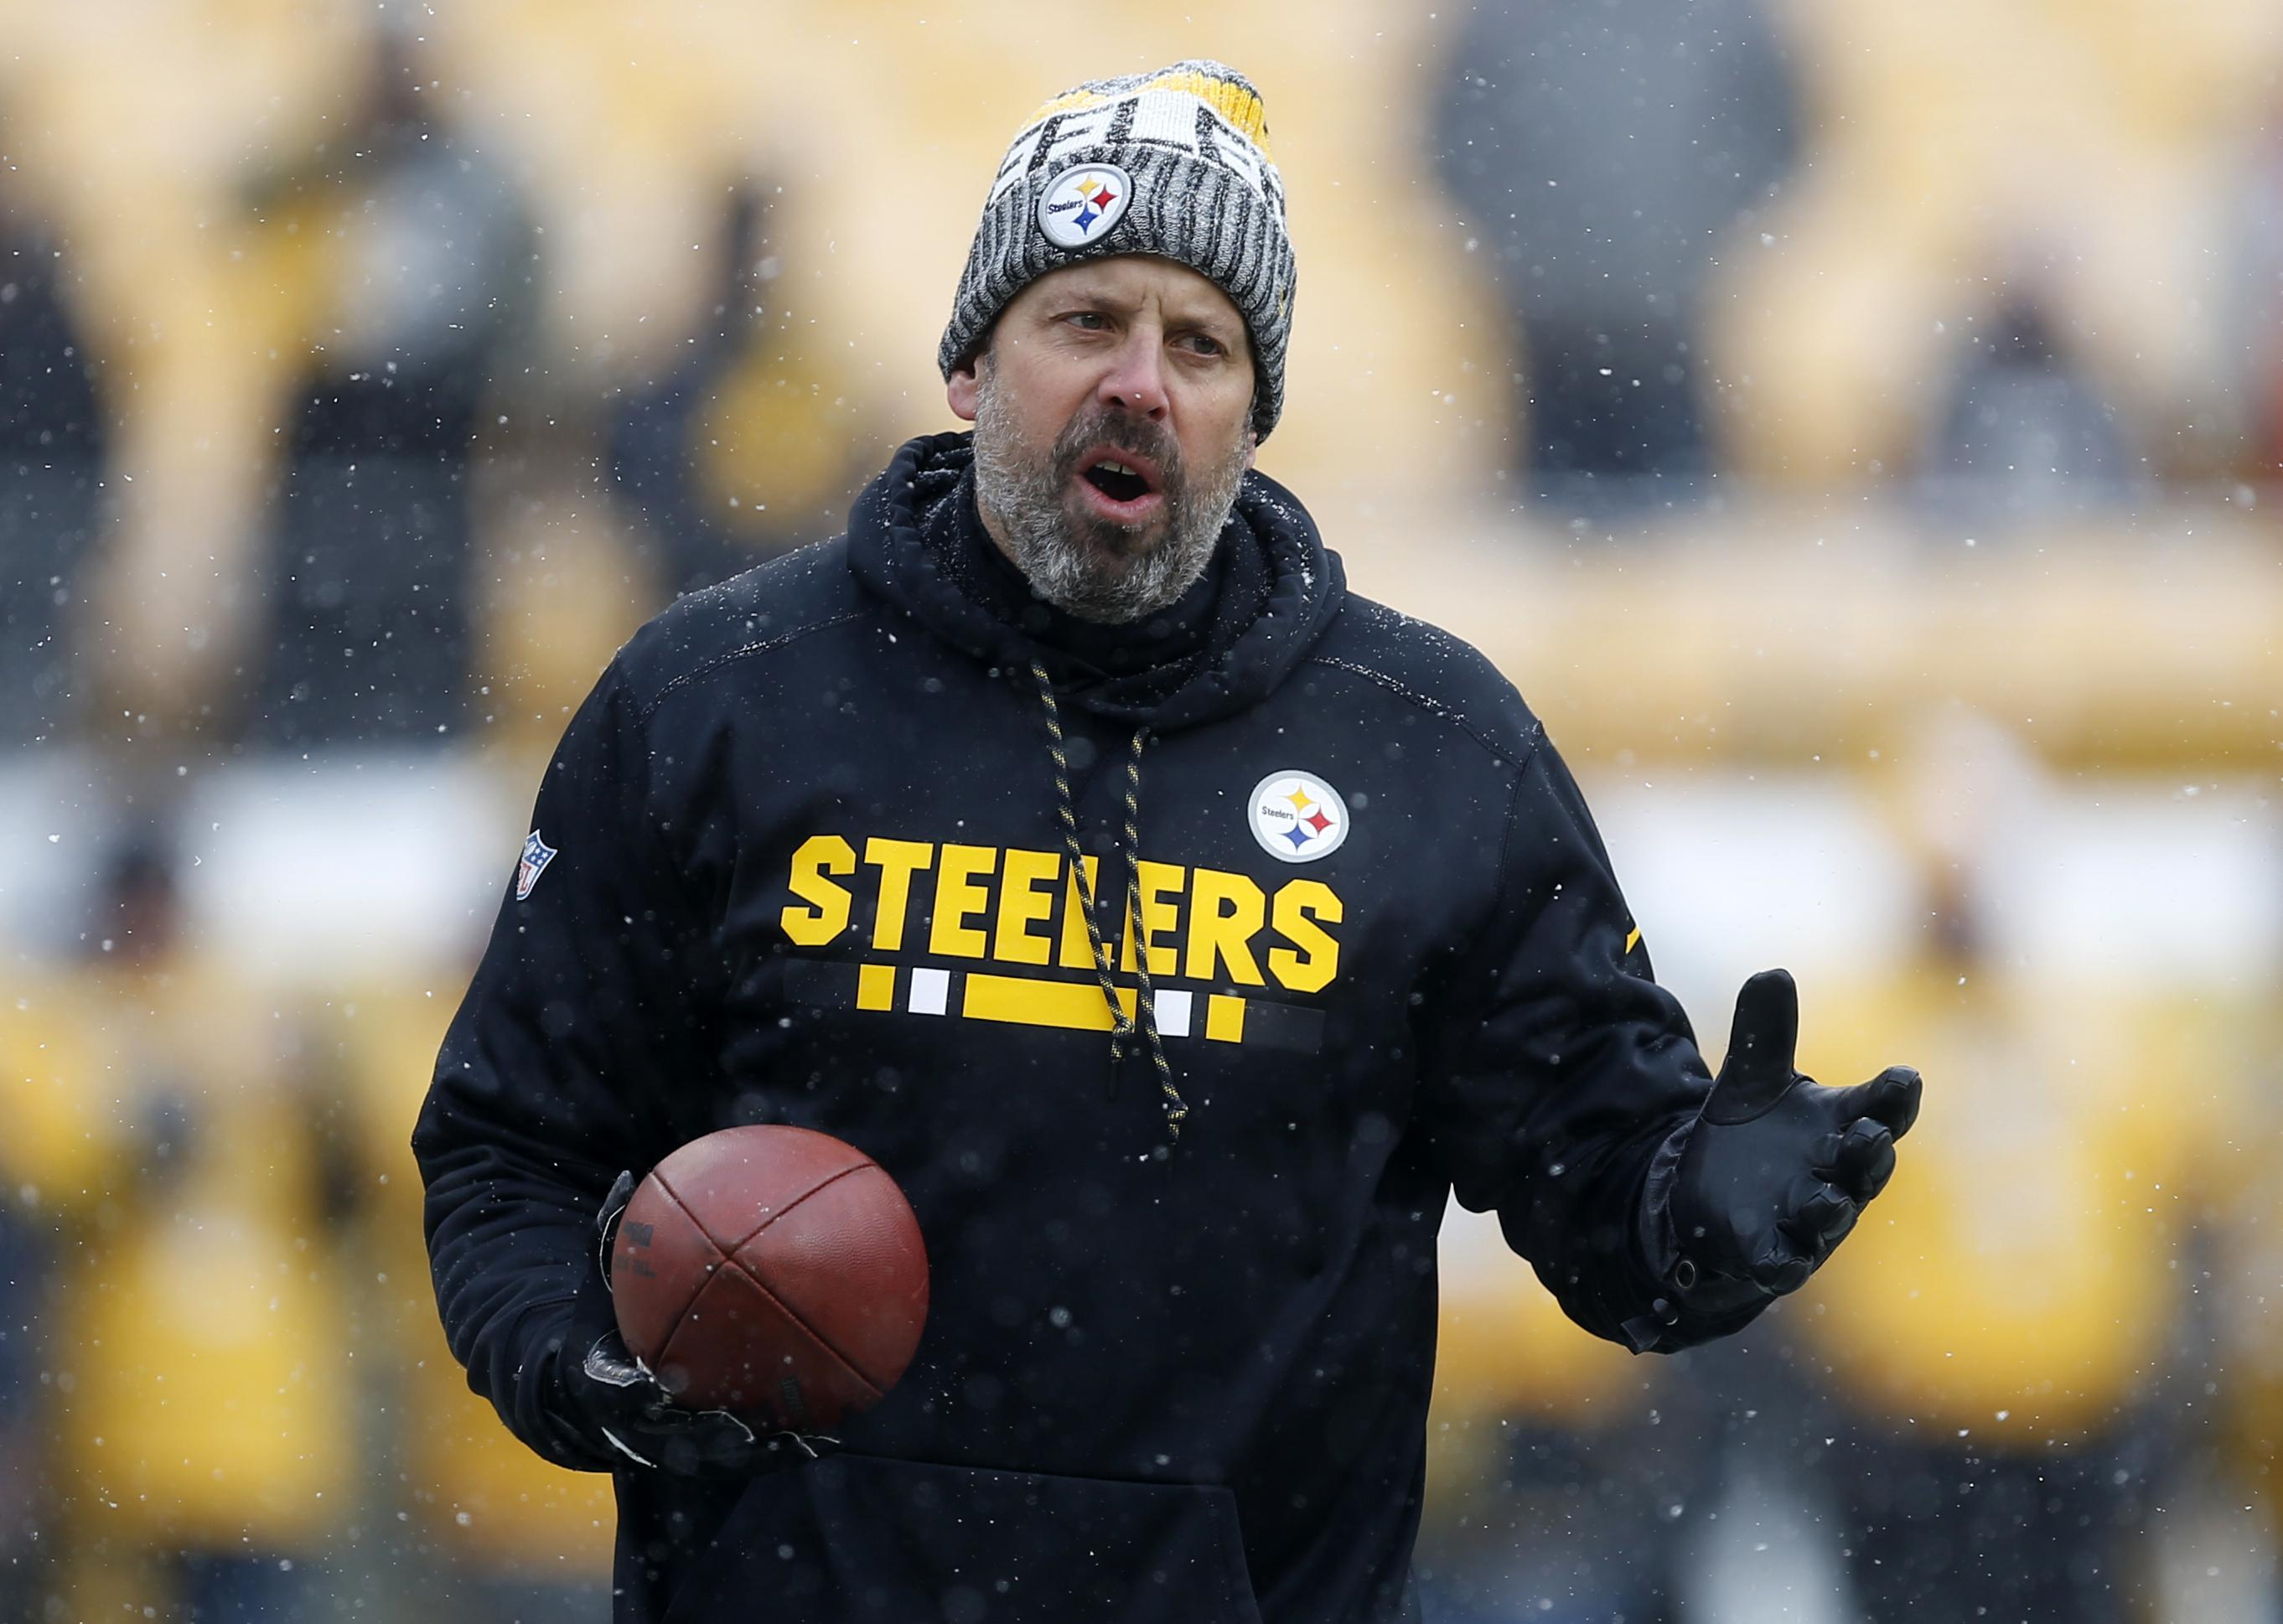 Former Steelers OC Haley excited about new start with Browns